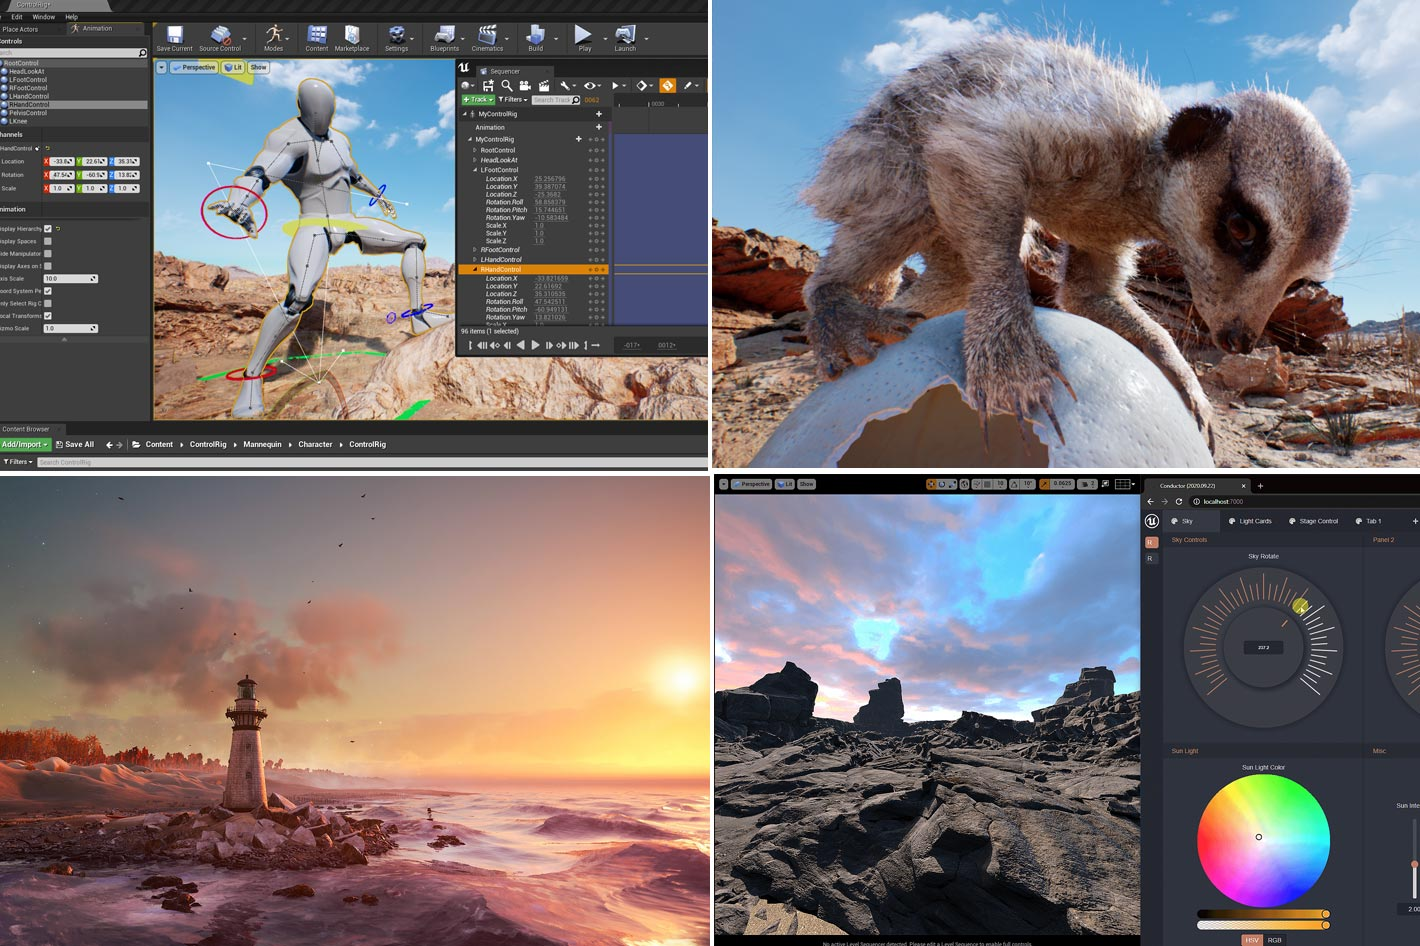 Unreal Engine 4.26 expands virtual production toolset